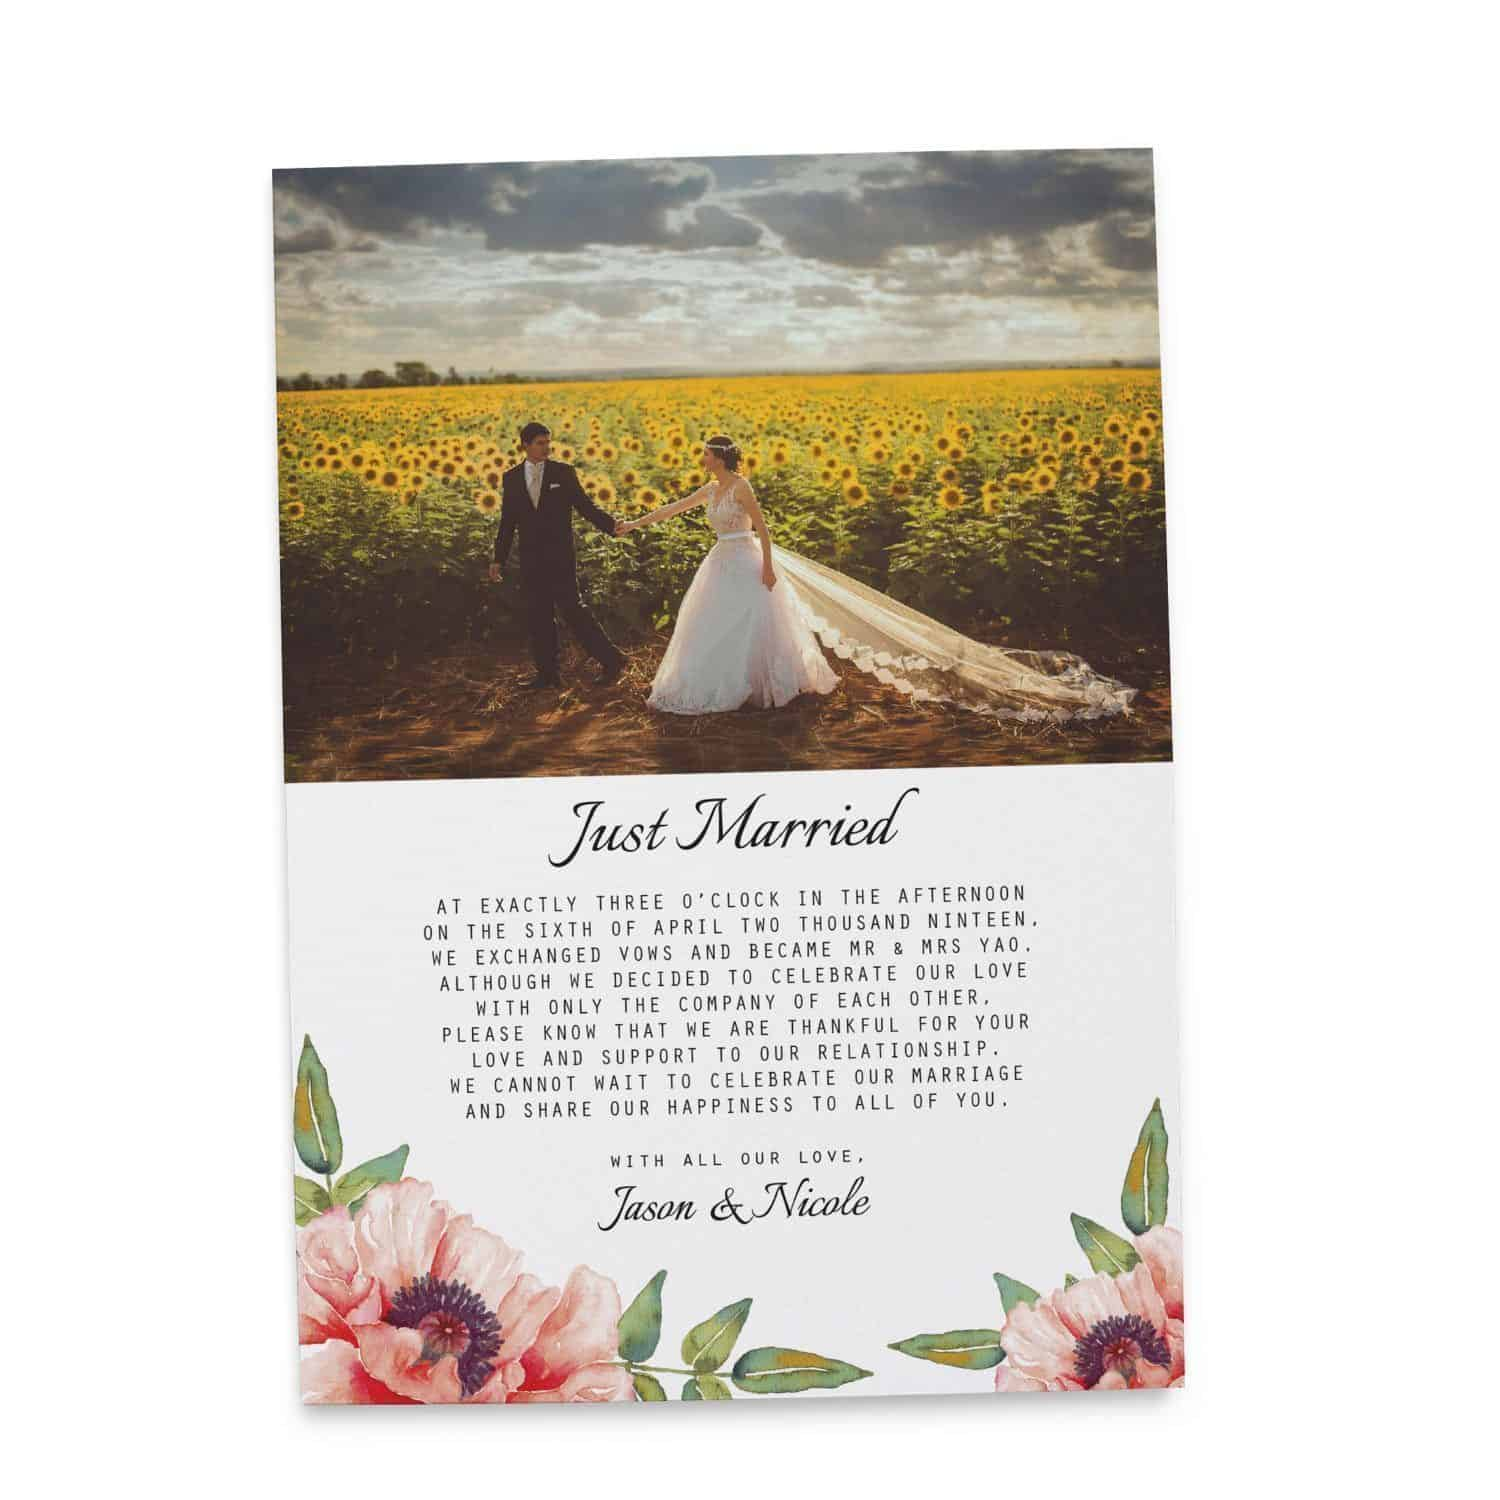 Just married elopemen announcement cards floral eloped cards add just married elopemen announcement cards floral eloped cards add your own picture loveateverysight monicamarmolfo Image collections